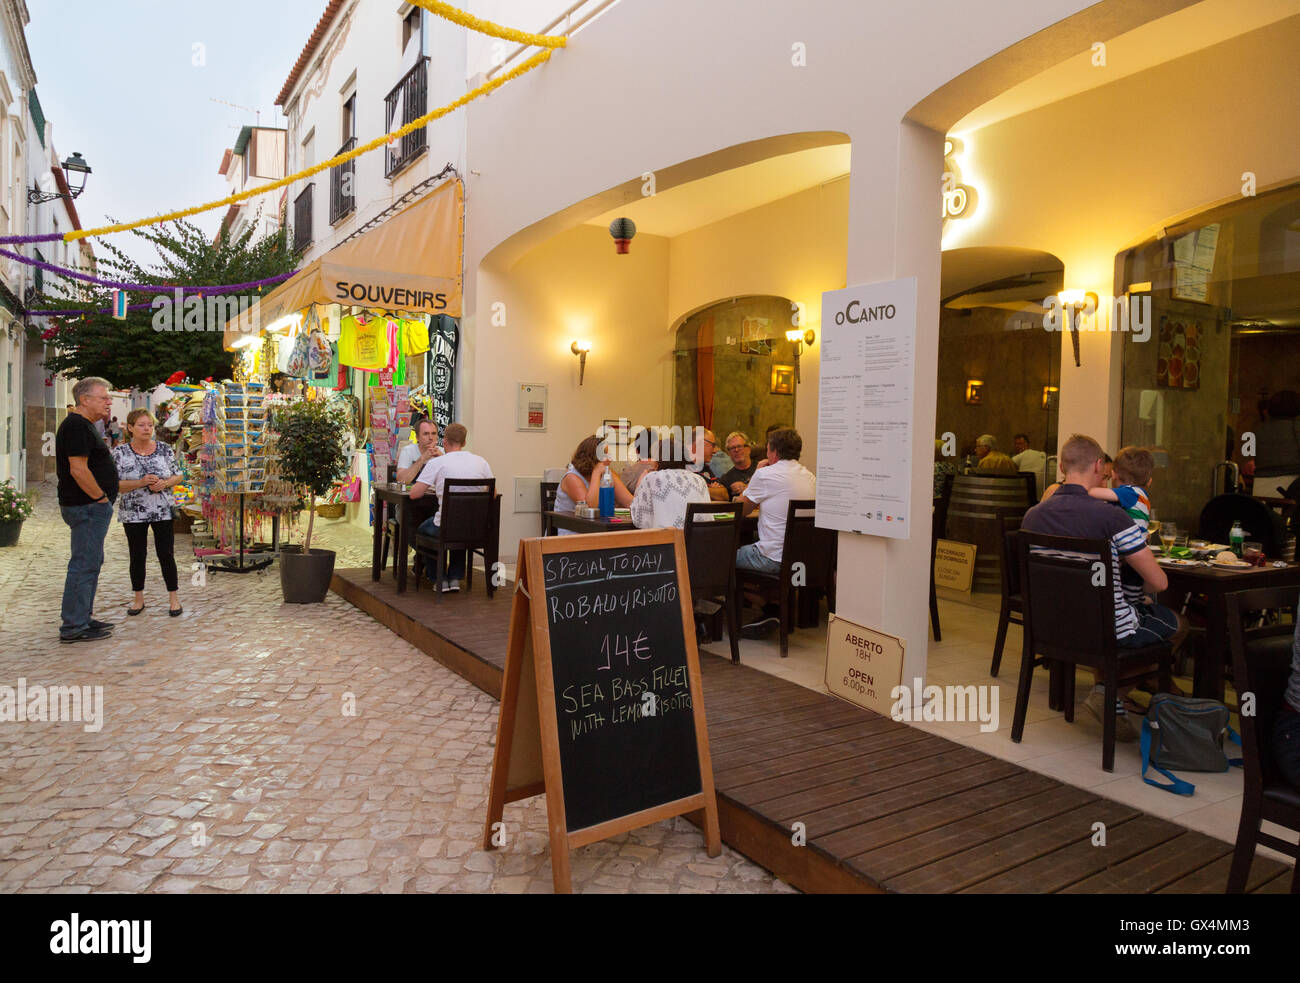 People eating at a restaurant in the evening, Ferragudo, Algarve, Portugal Europe - Stock Image